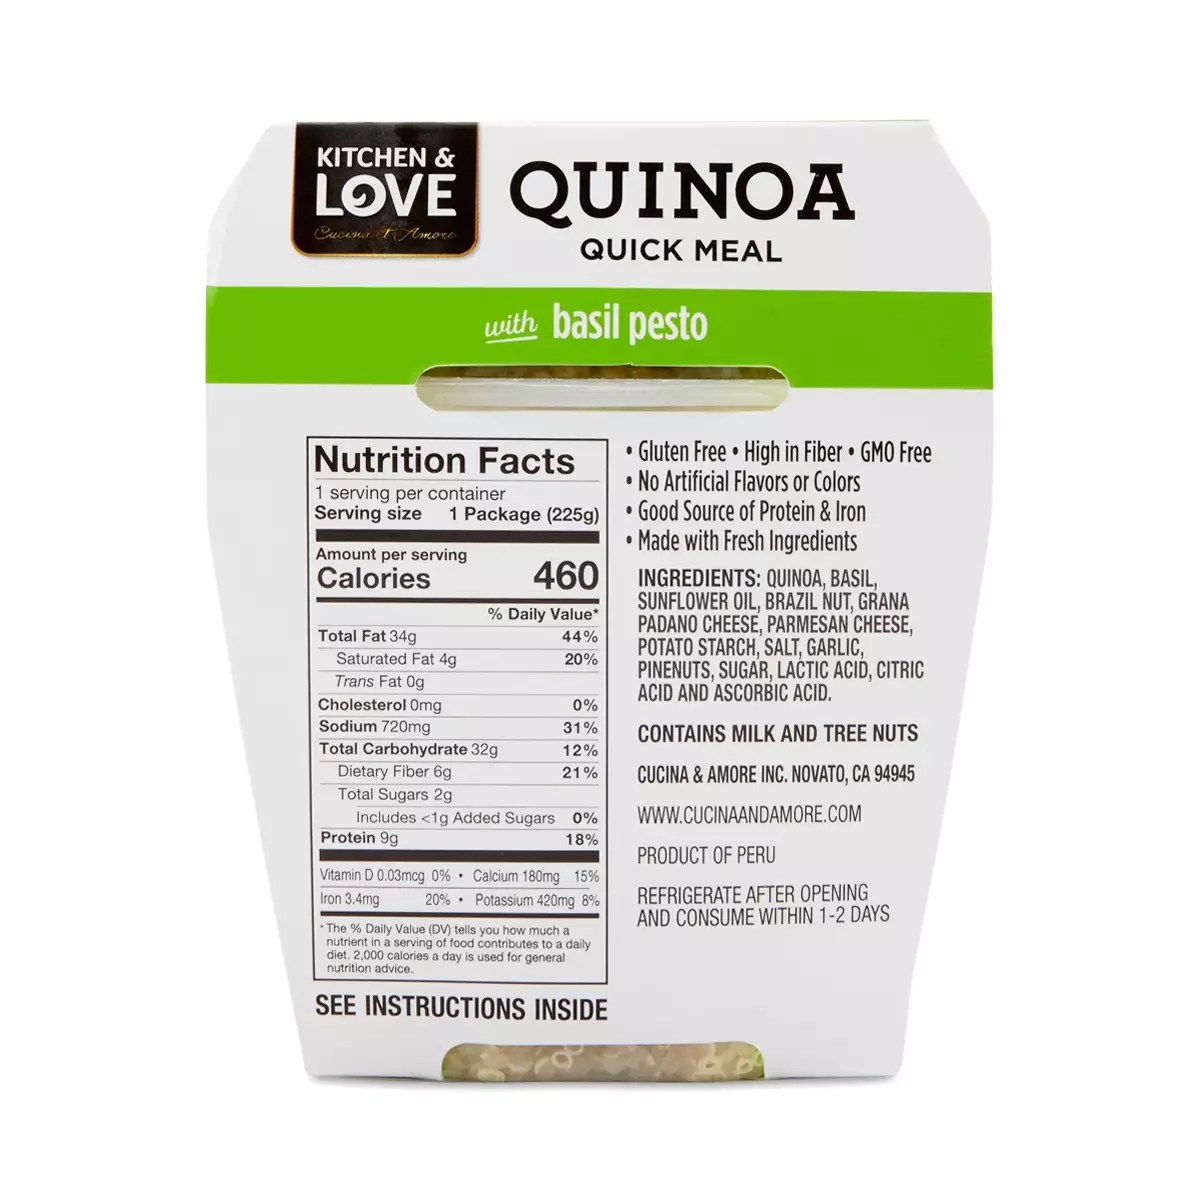 Cucina & Amore Piquillo Peppers Kitchen Of Love Cucina Amore Quinoa Meal Quinoa In A Cup The